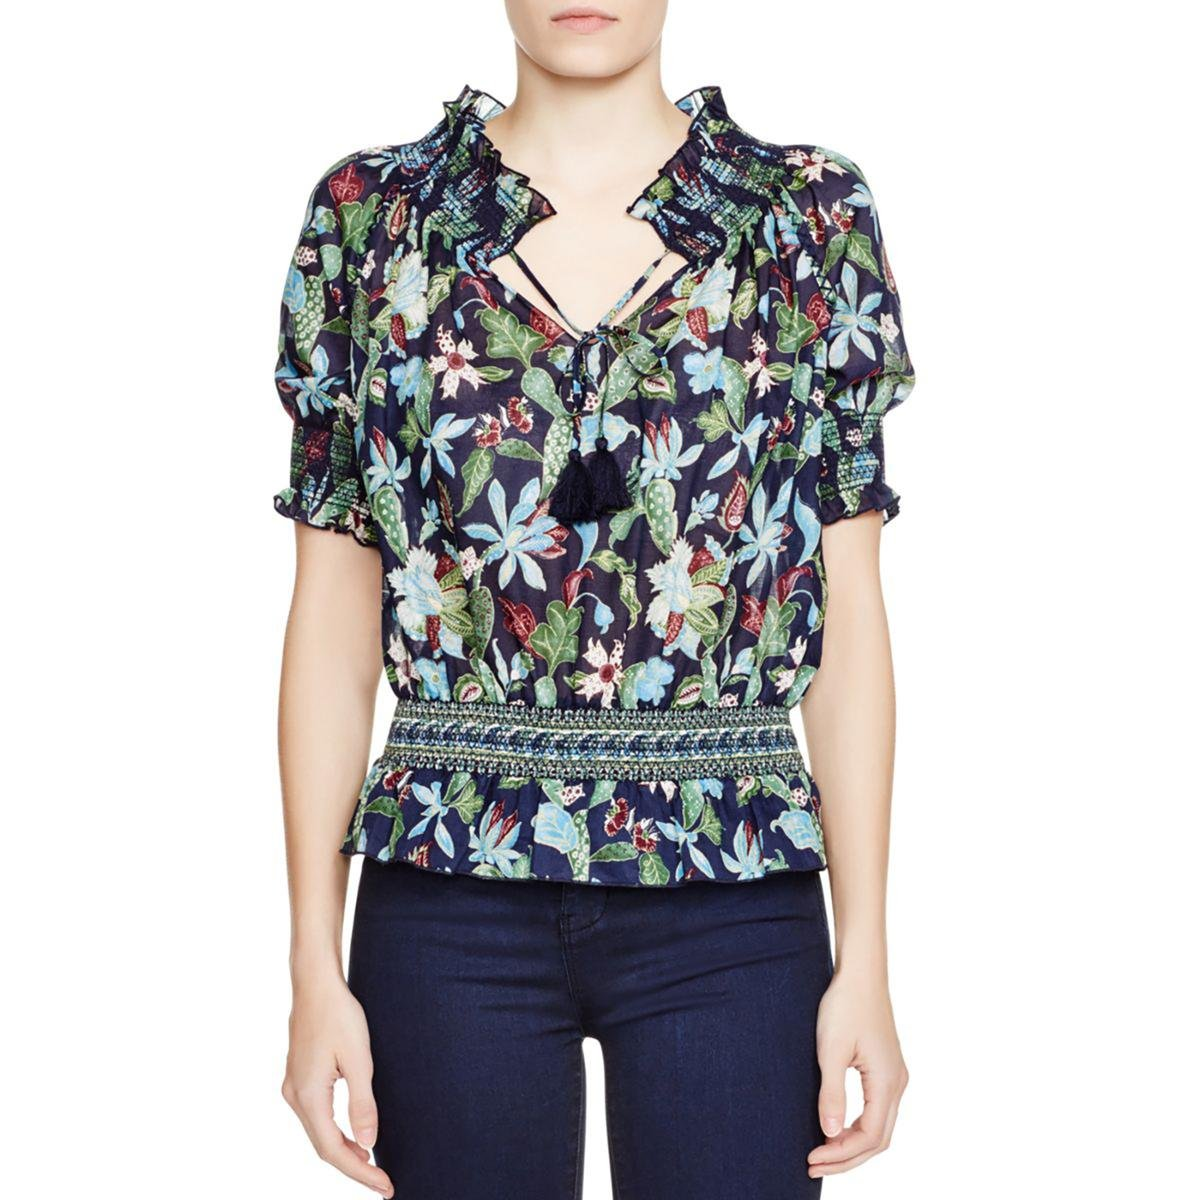 Tory Burch Womens Cotton Floral Print Peasant Top Navy 10